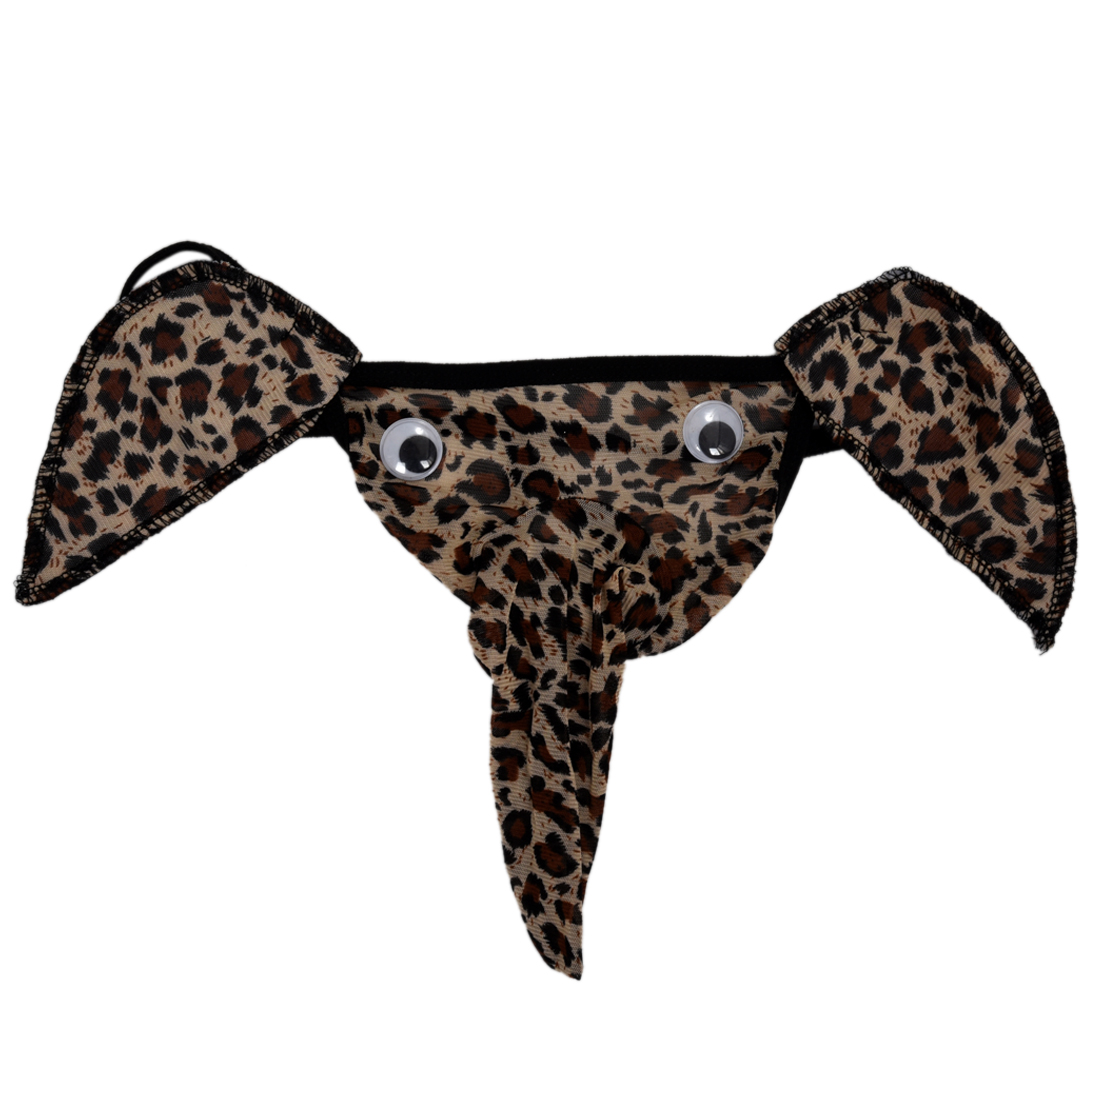 c36e24ae217 Sexy Men Elephant Underwear Pouch Briefs Thongs Funny G string Leopard-in G- Strings   Thongs from Men s Clothing   Accessories on Aliexpress.com